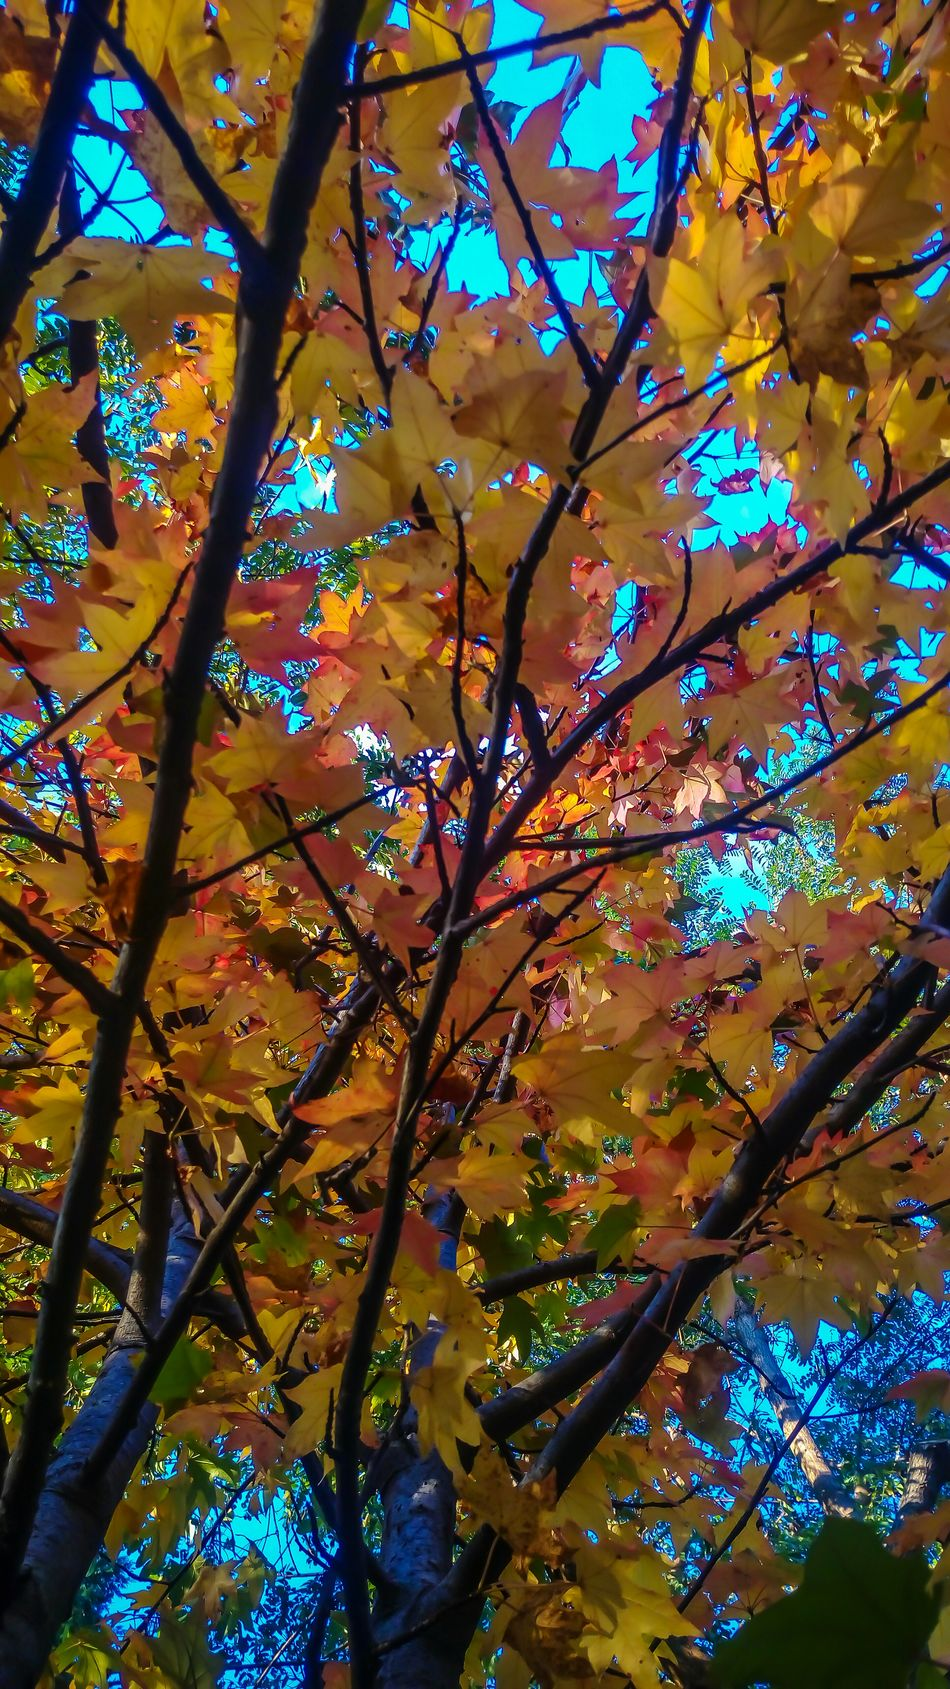 Tree Liquidambar Colors Color Explosion In The Wood Countrystyle Countryhouse Athomeinthewood Athomeinthemountains StonexOneGalileo Garden Photography At Home Sweet Home Mygardentoday Autumn Colors Autumn Orange Color Beauty In Nature Tree Tranquility Autumn Beauty In Nature